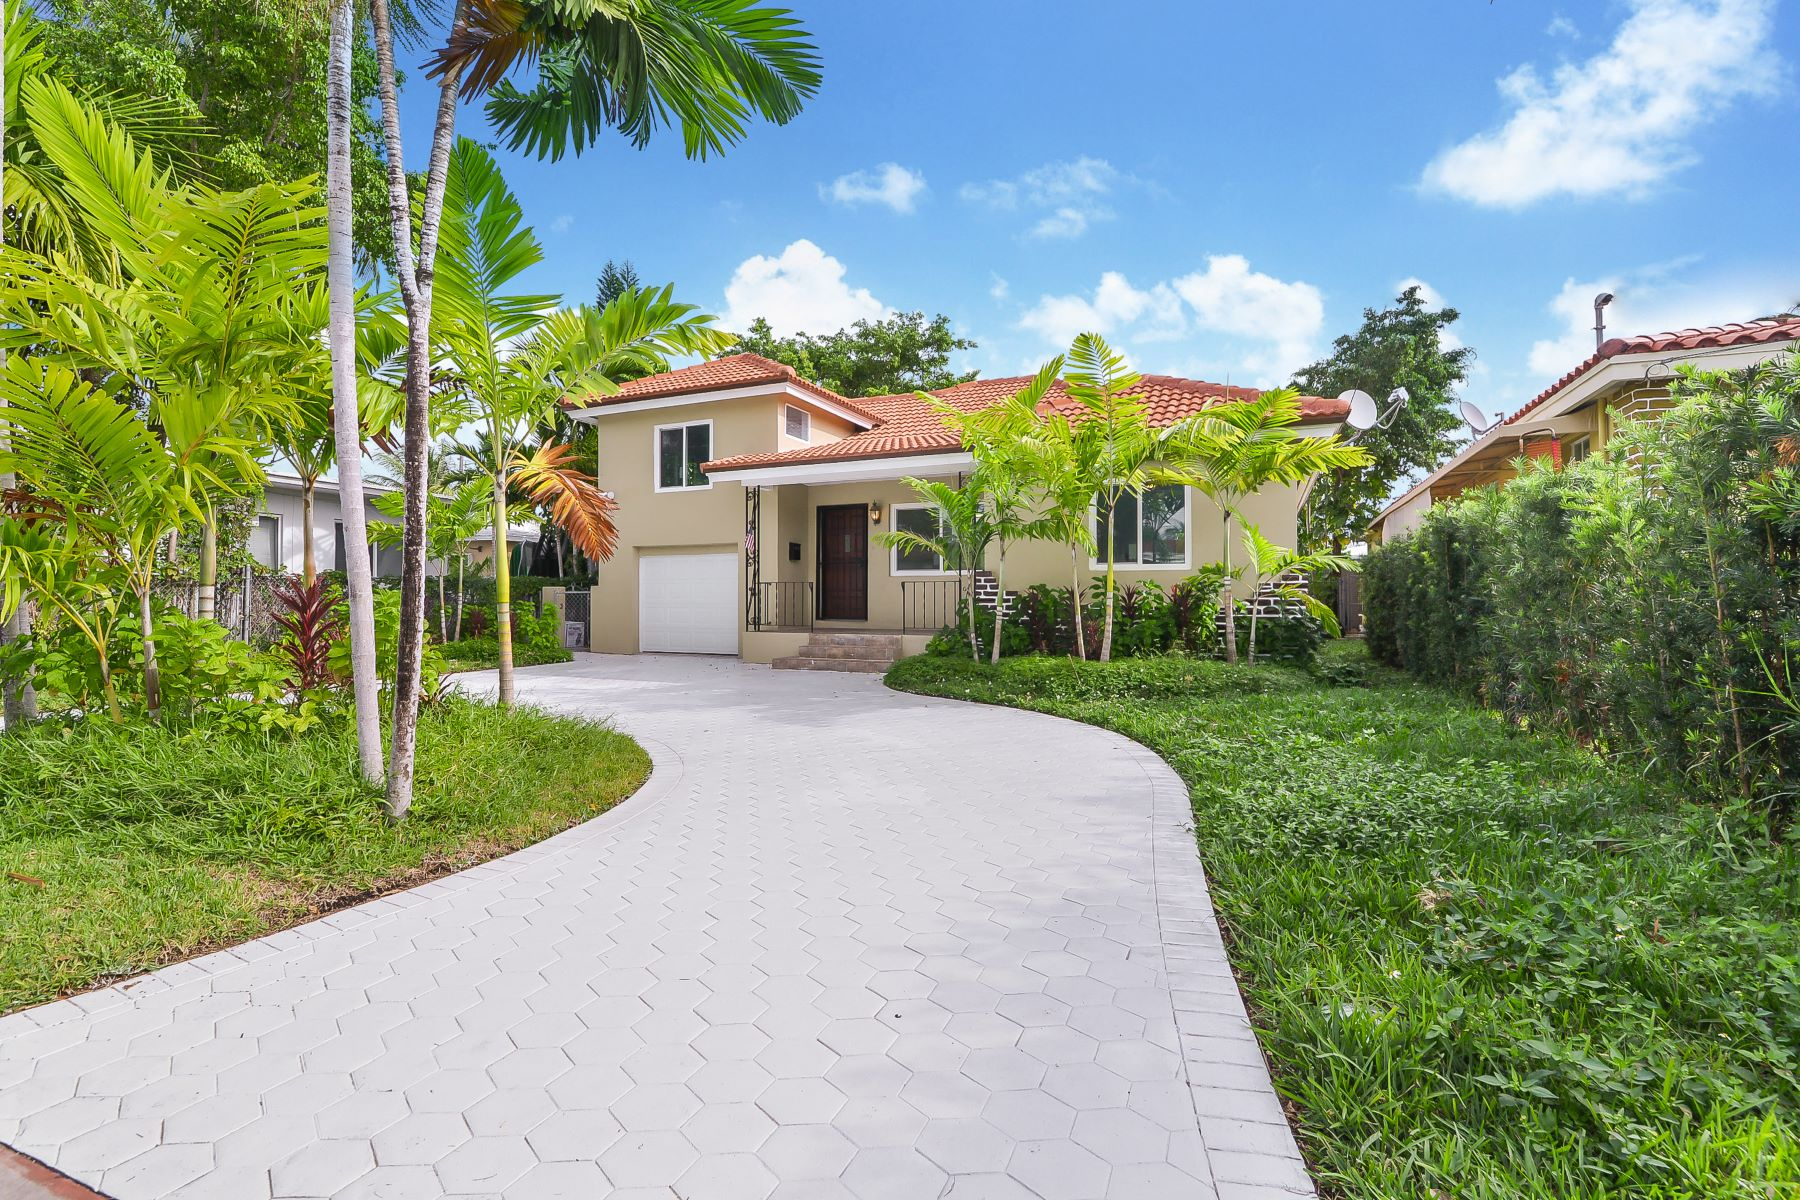 Single Family Homes for Sale at 9073 Froude Ave Surfside, Florida 33154 United States